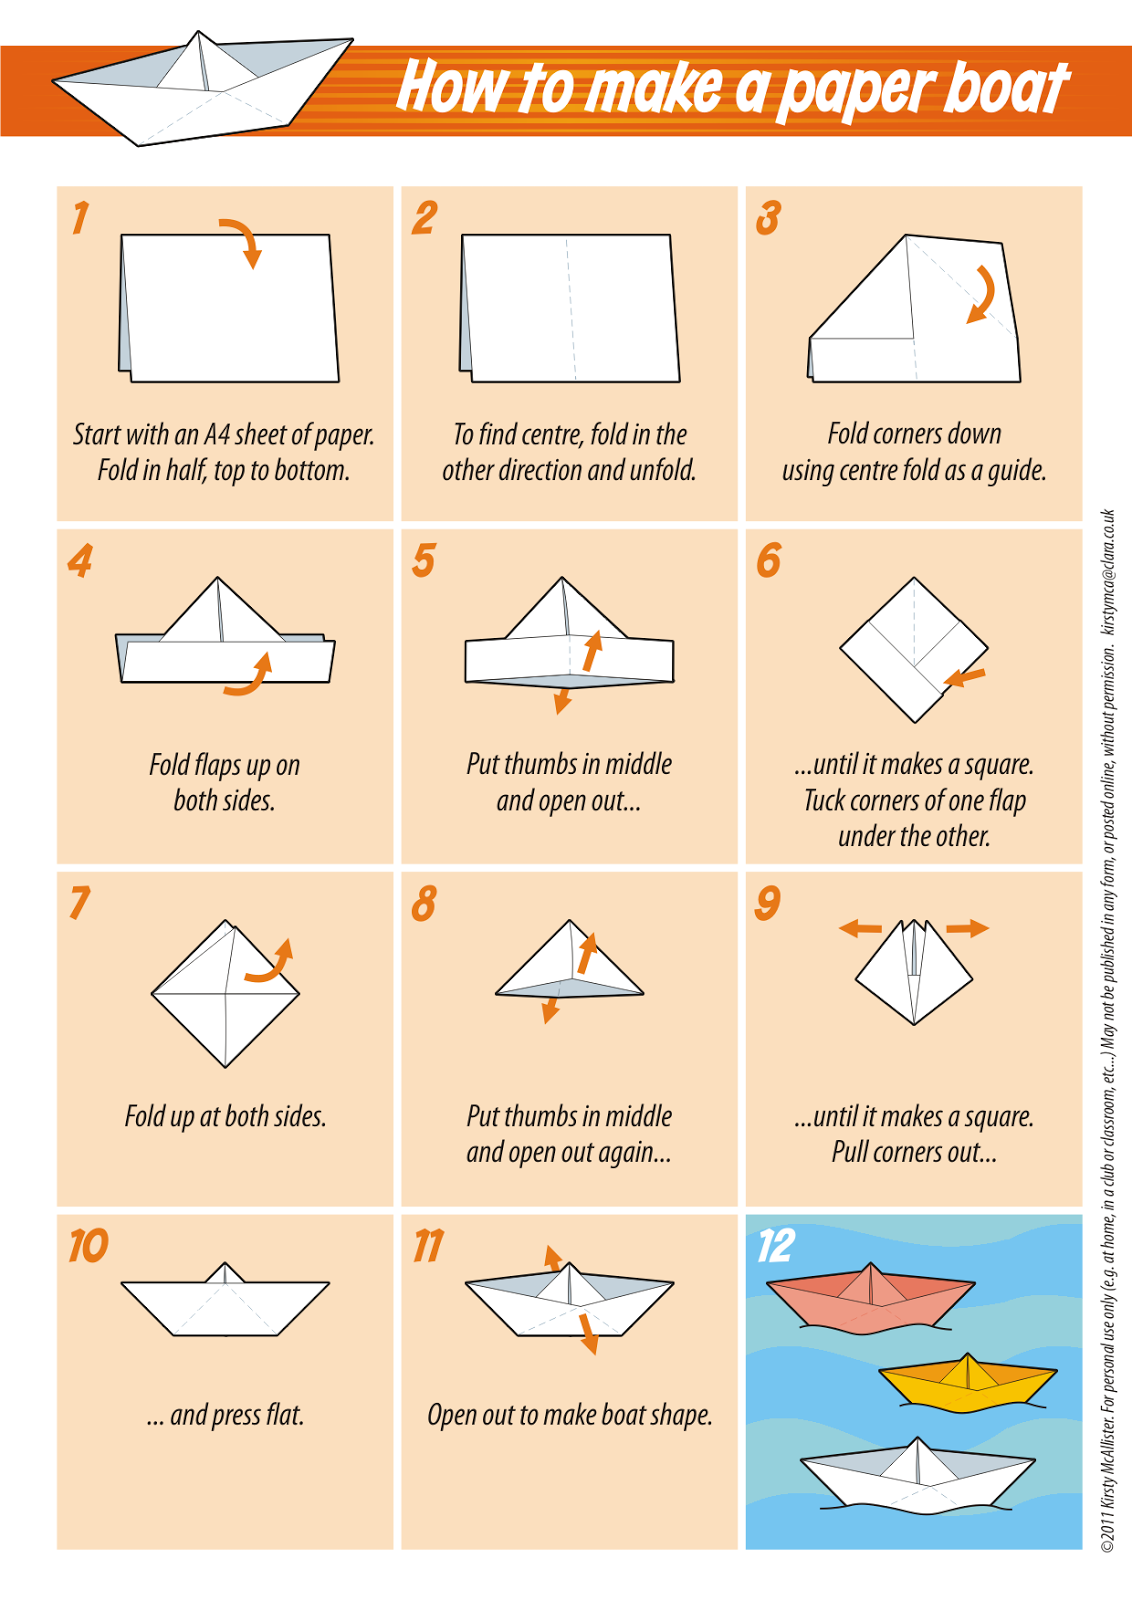 A Paper Boat That`s Waterproof!